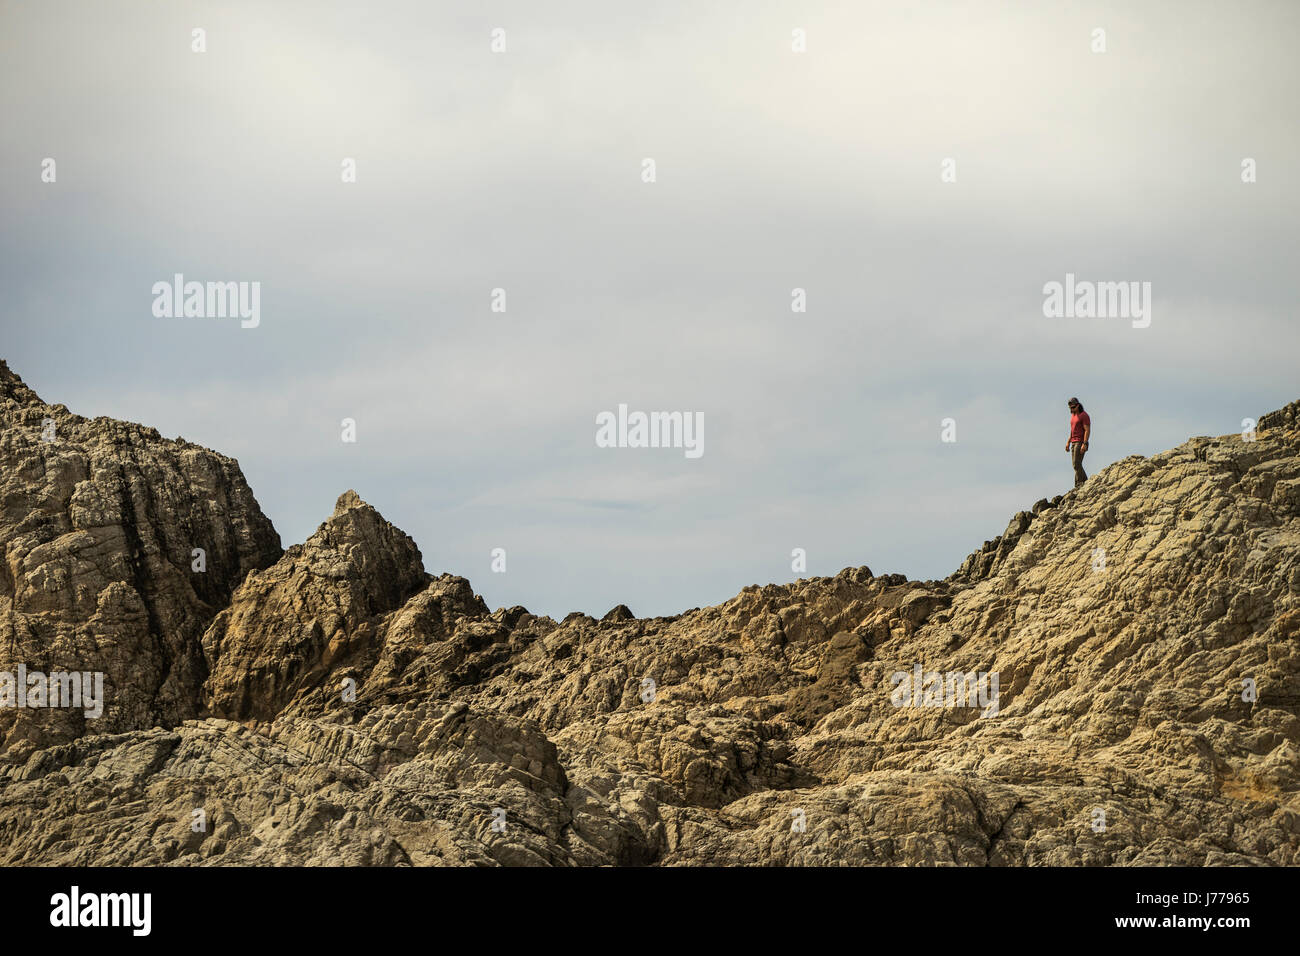 Mid distance view of man walking on mountain against sky - Stock Image